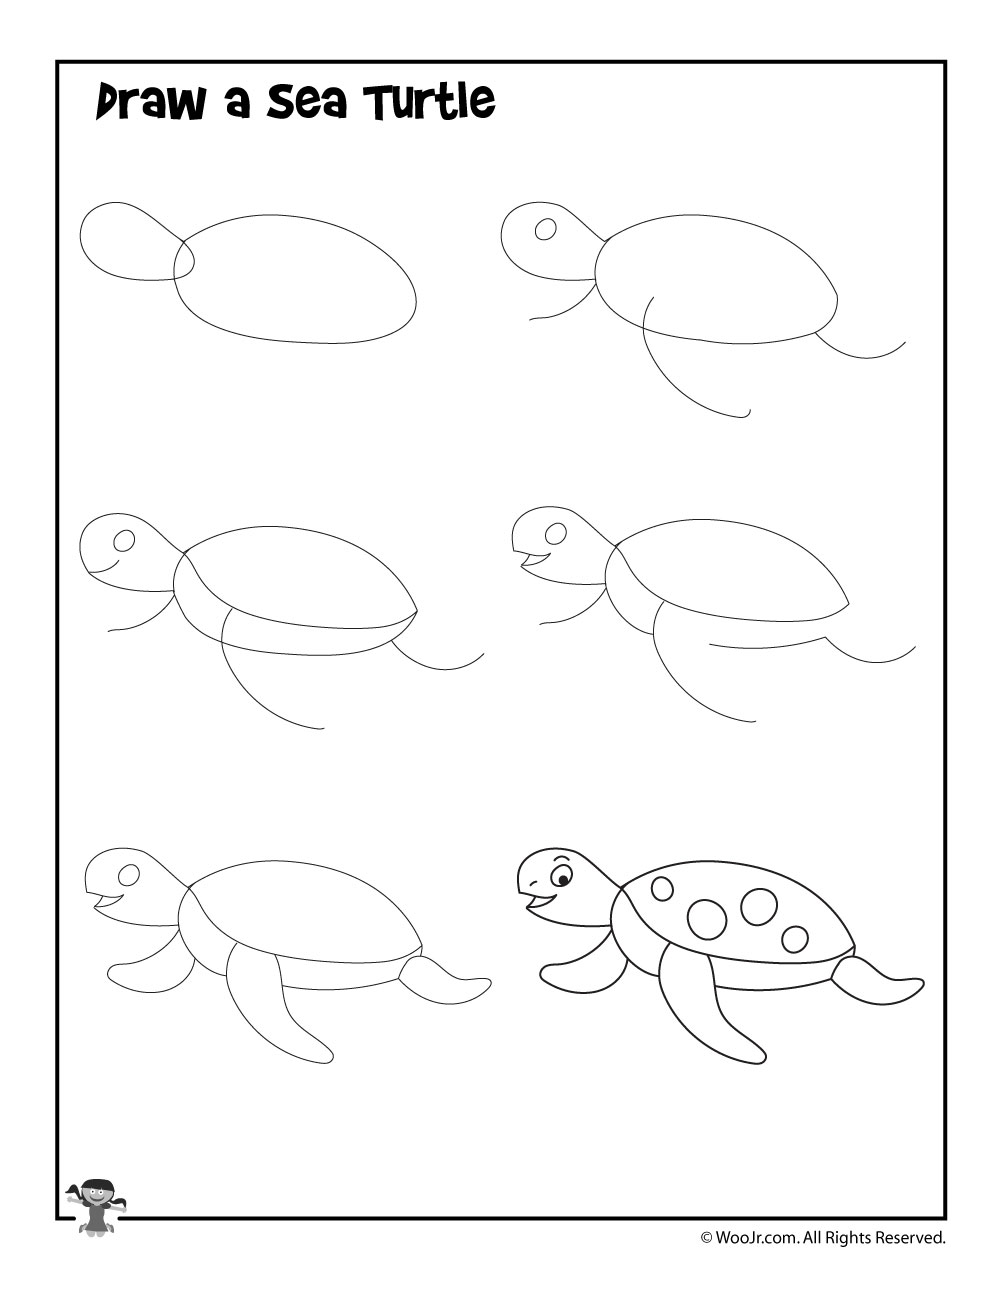 How To Draw A Sea Turtle Woo Jr Kids Activities